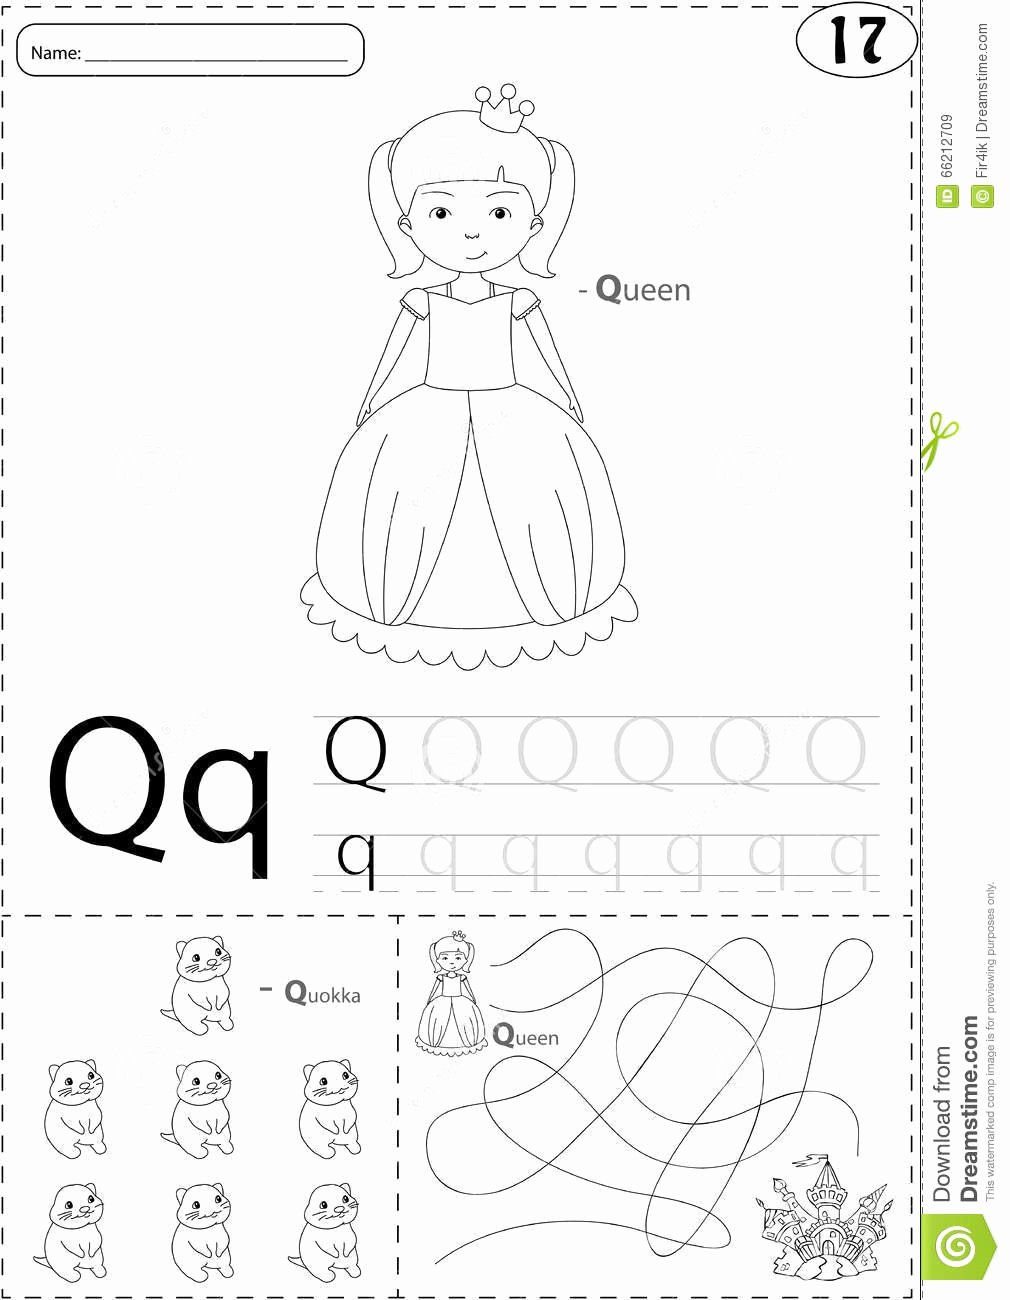 Queen Worksheets for Preschoolers New Queen Kids Stock Illustrations – 2 938 Queen Kids Stock